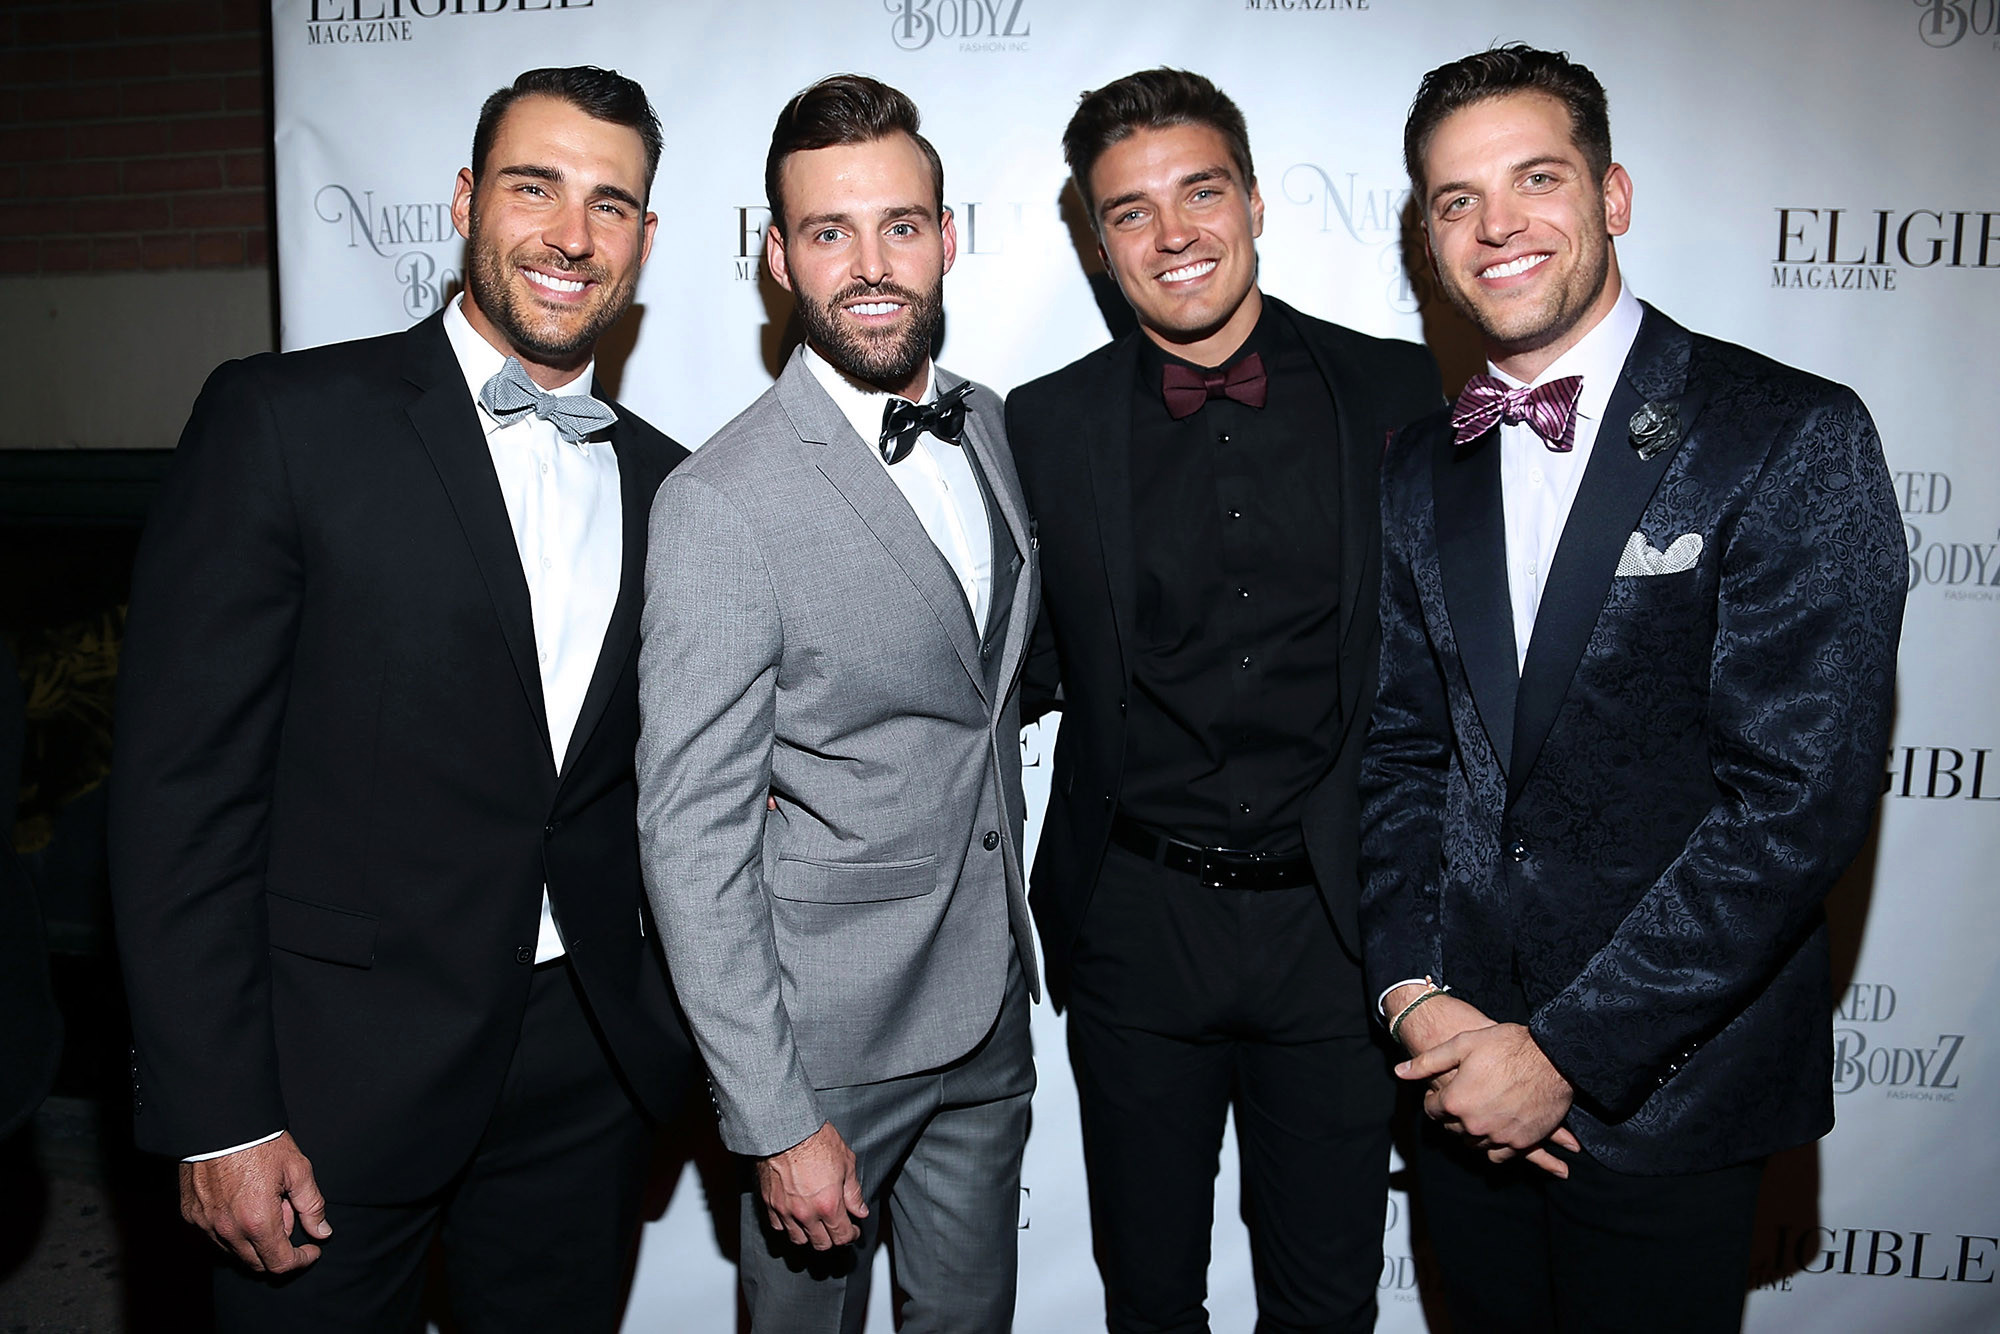 How 'Bachelor' men get dressed: Suit swaps, shopping sprees and more